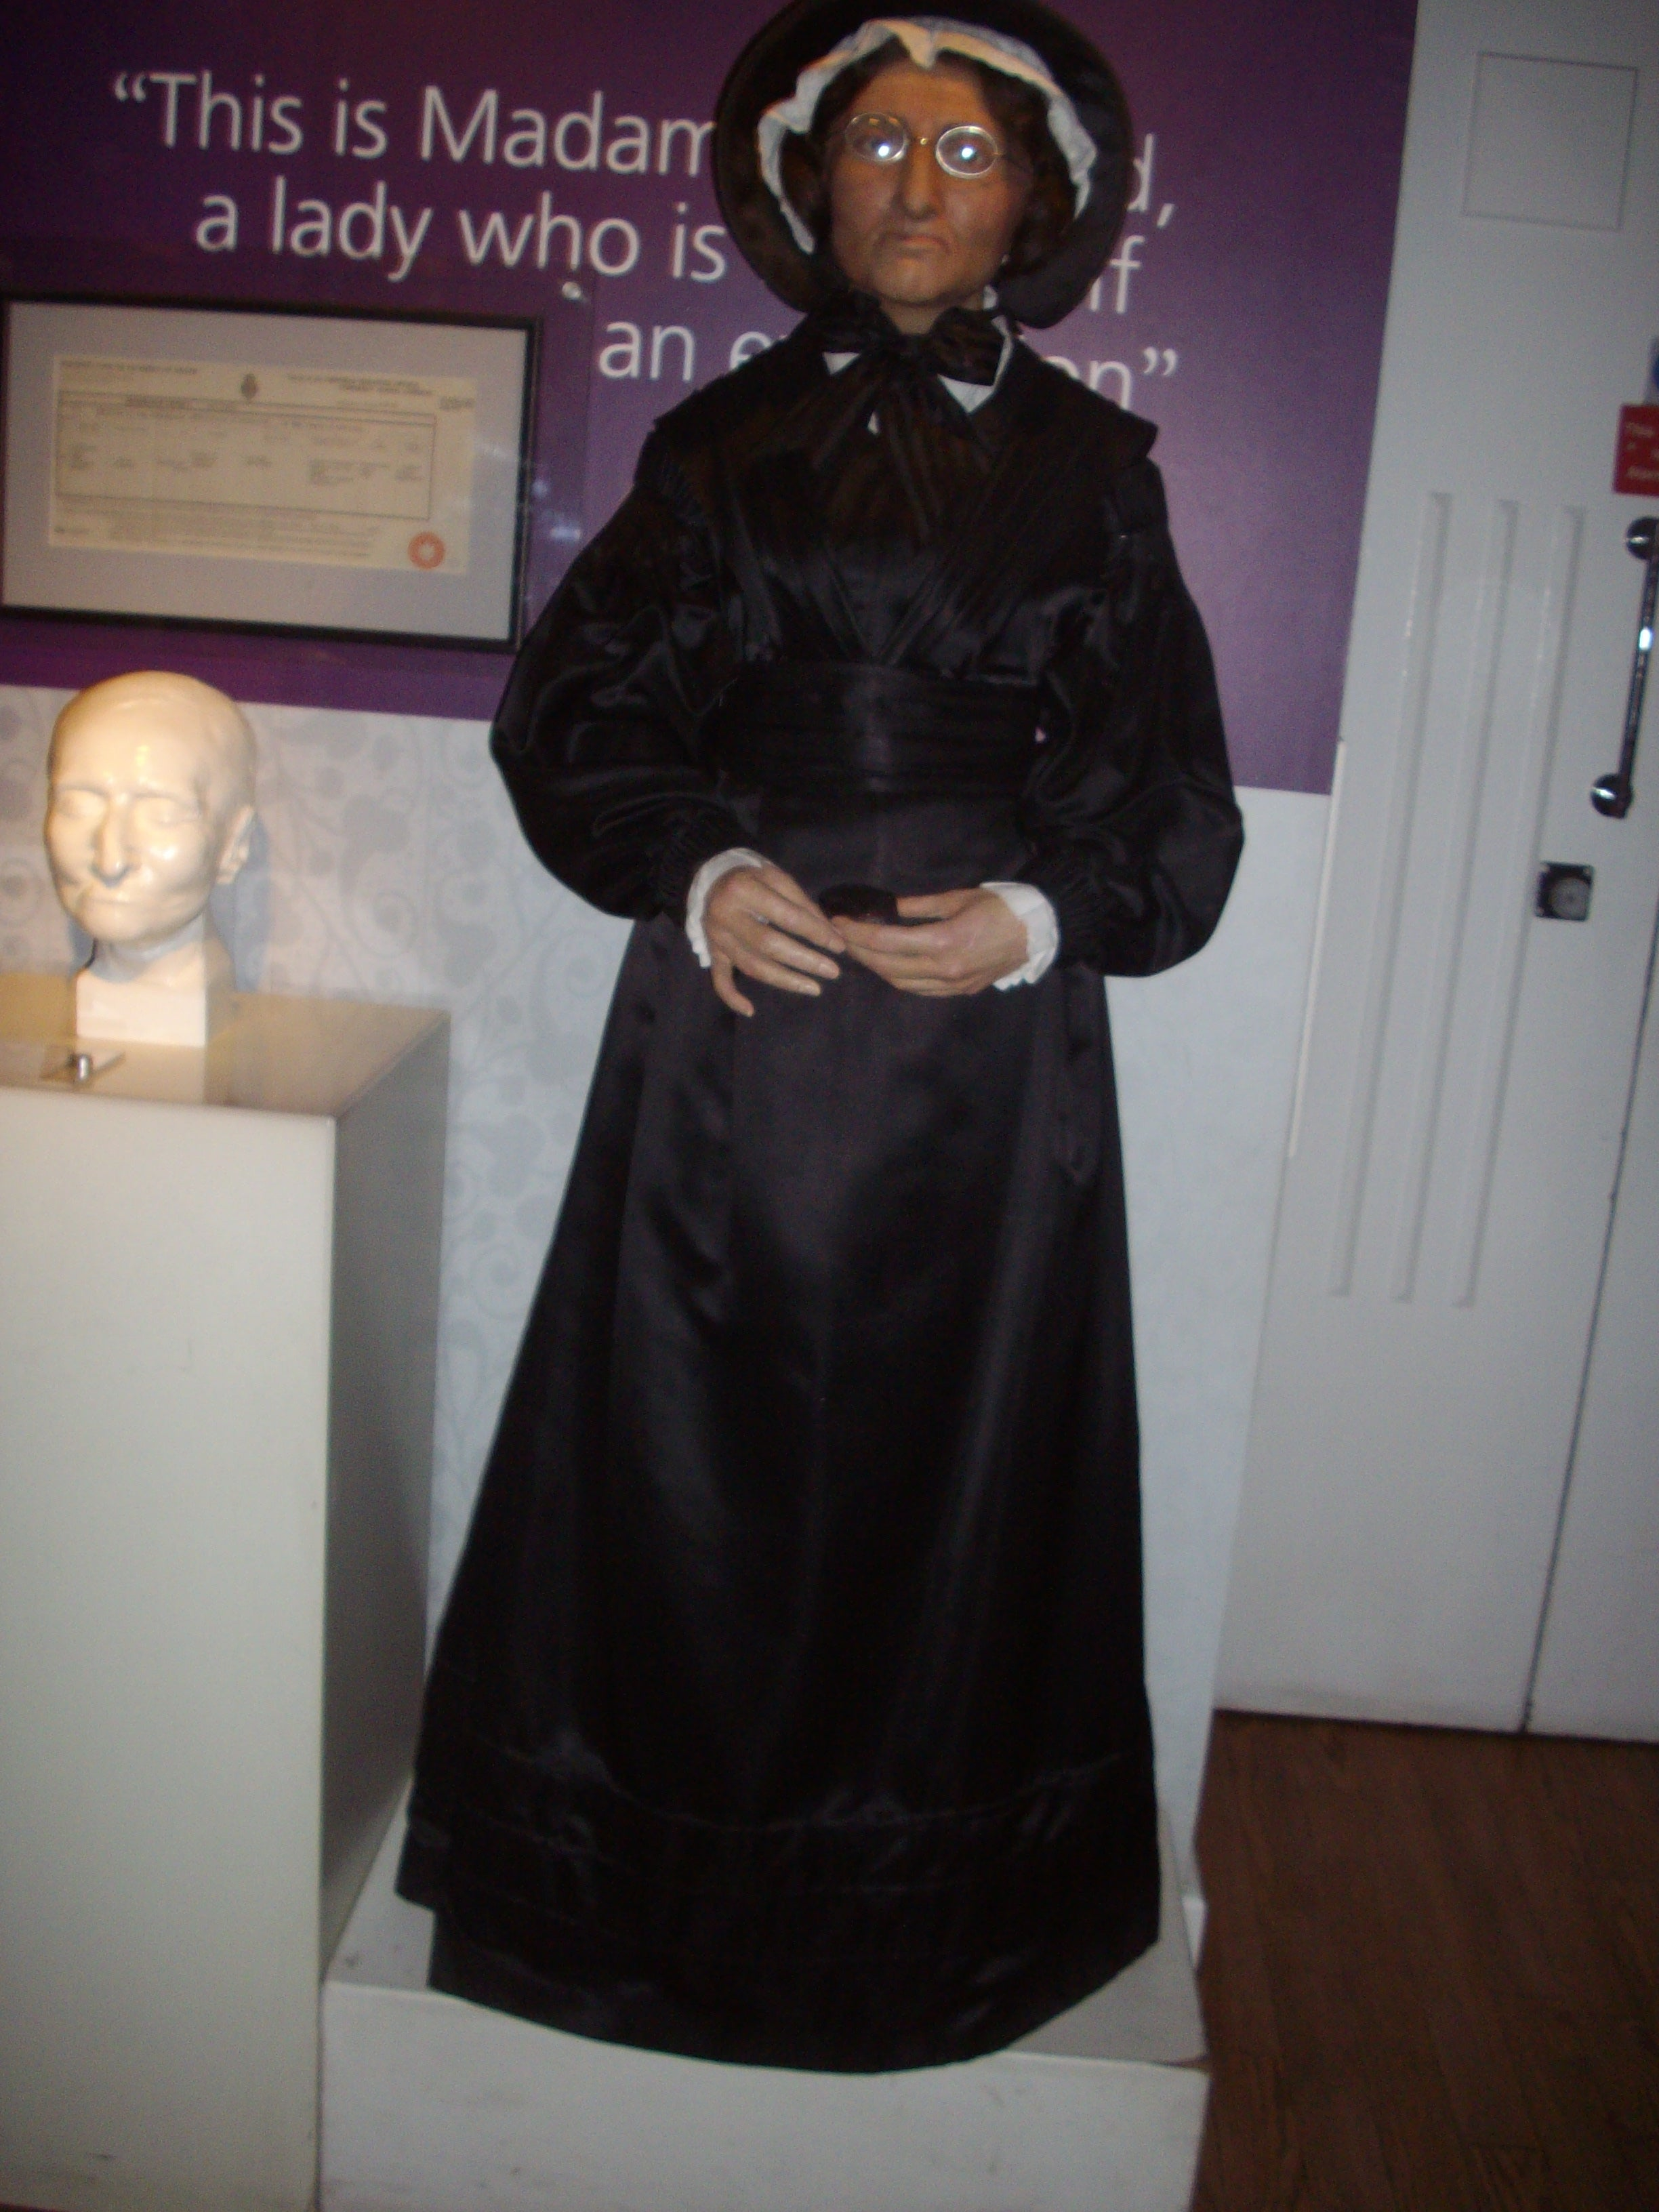 Madame Tussaud, herself, greets visitors at her epoymous museum.